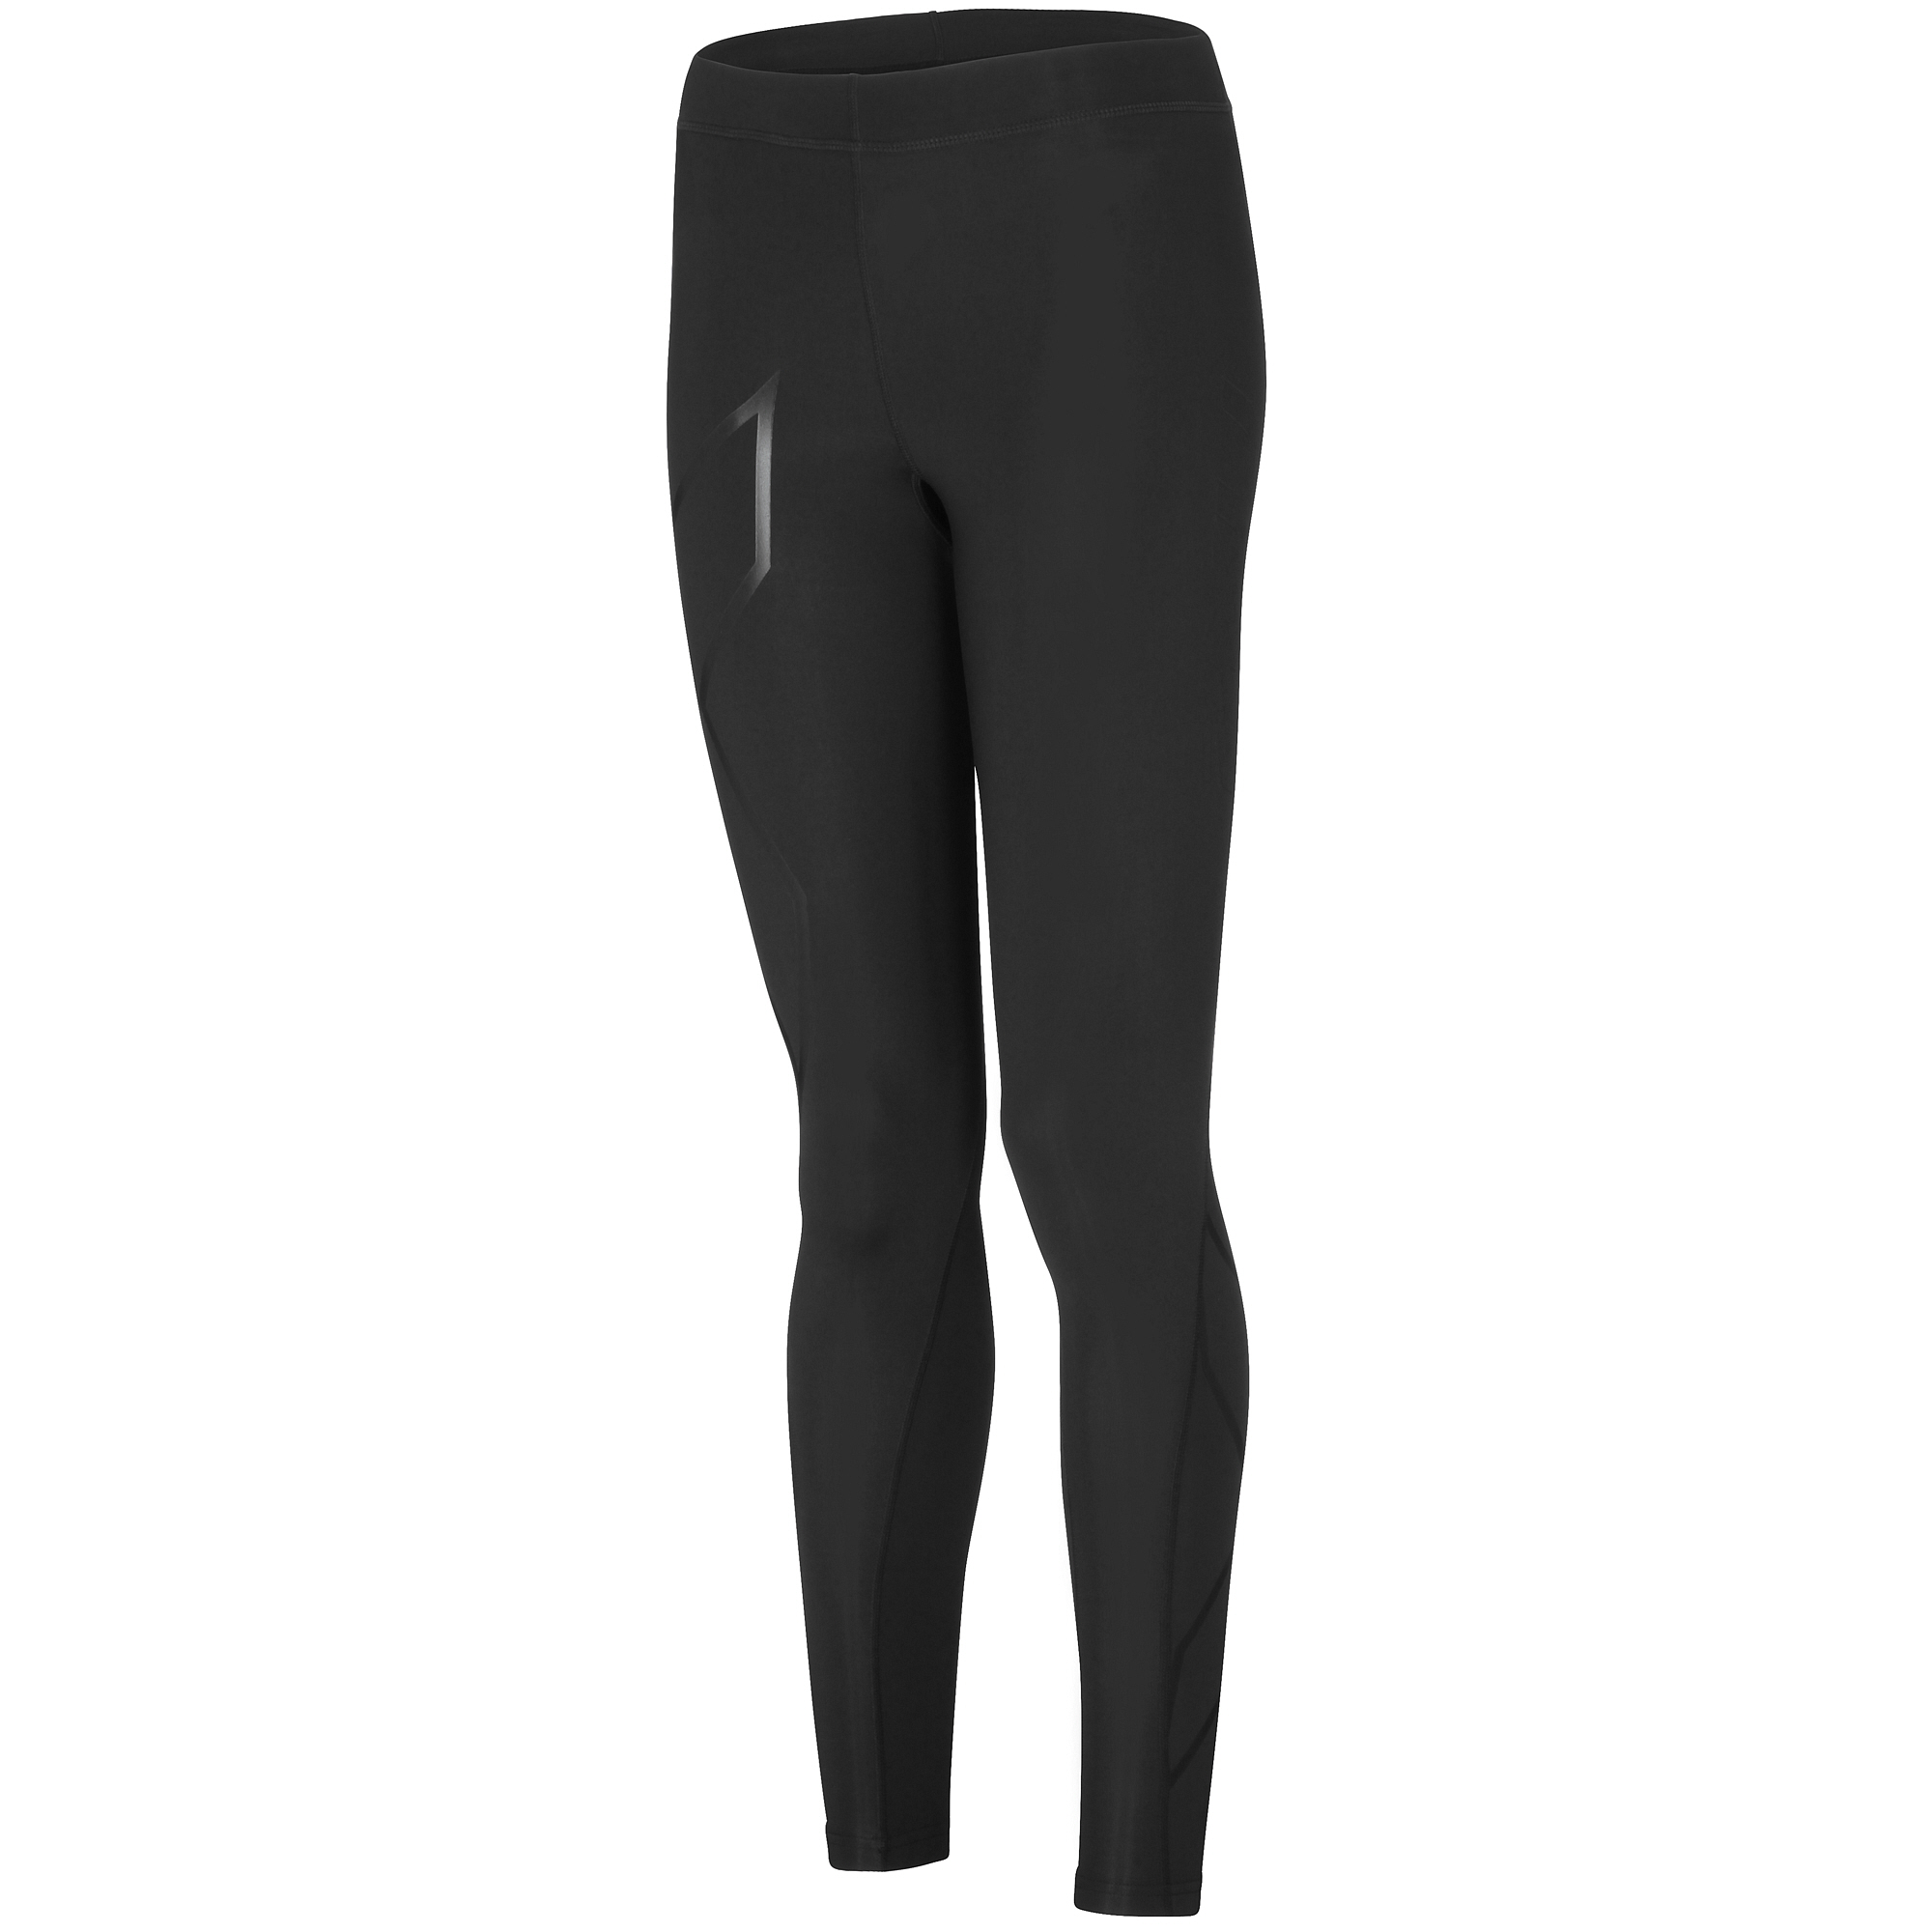 09922bd31f2 2XU Women's Core Compression Tights